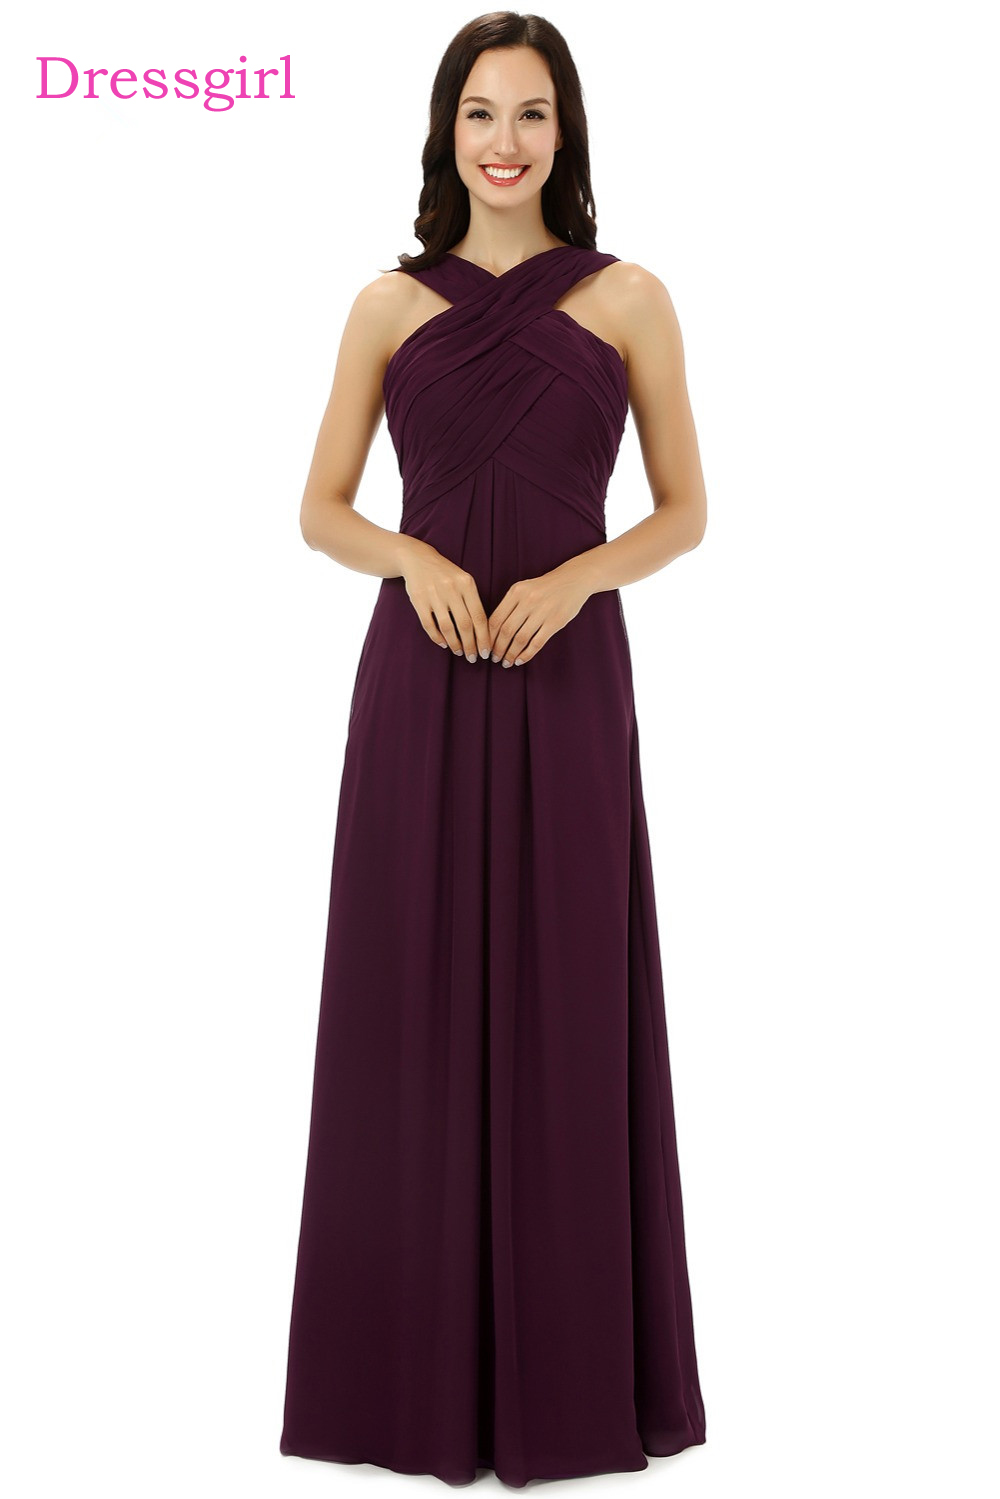 New 2018 cheap bridesmaid dresses under 50 a line halter for Cheap wedding dresses under 50 dollars